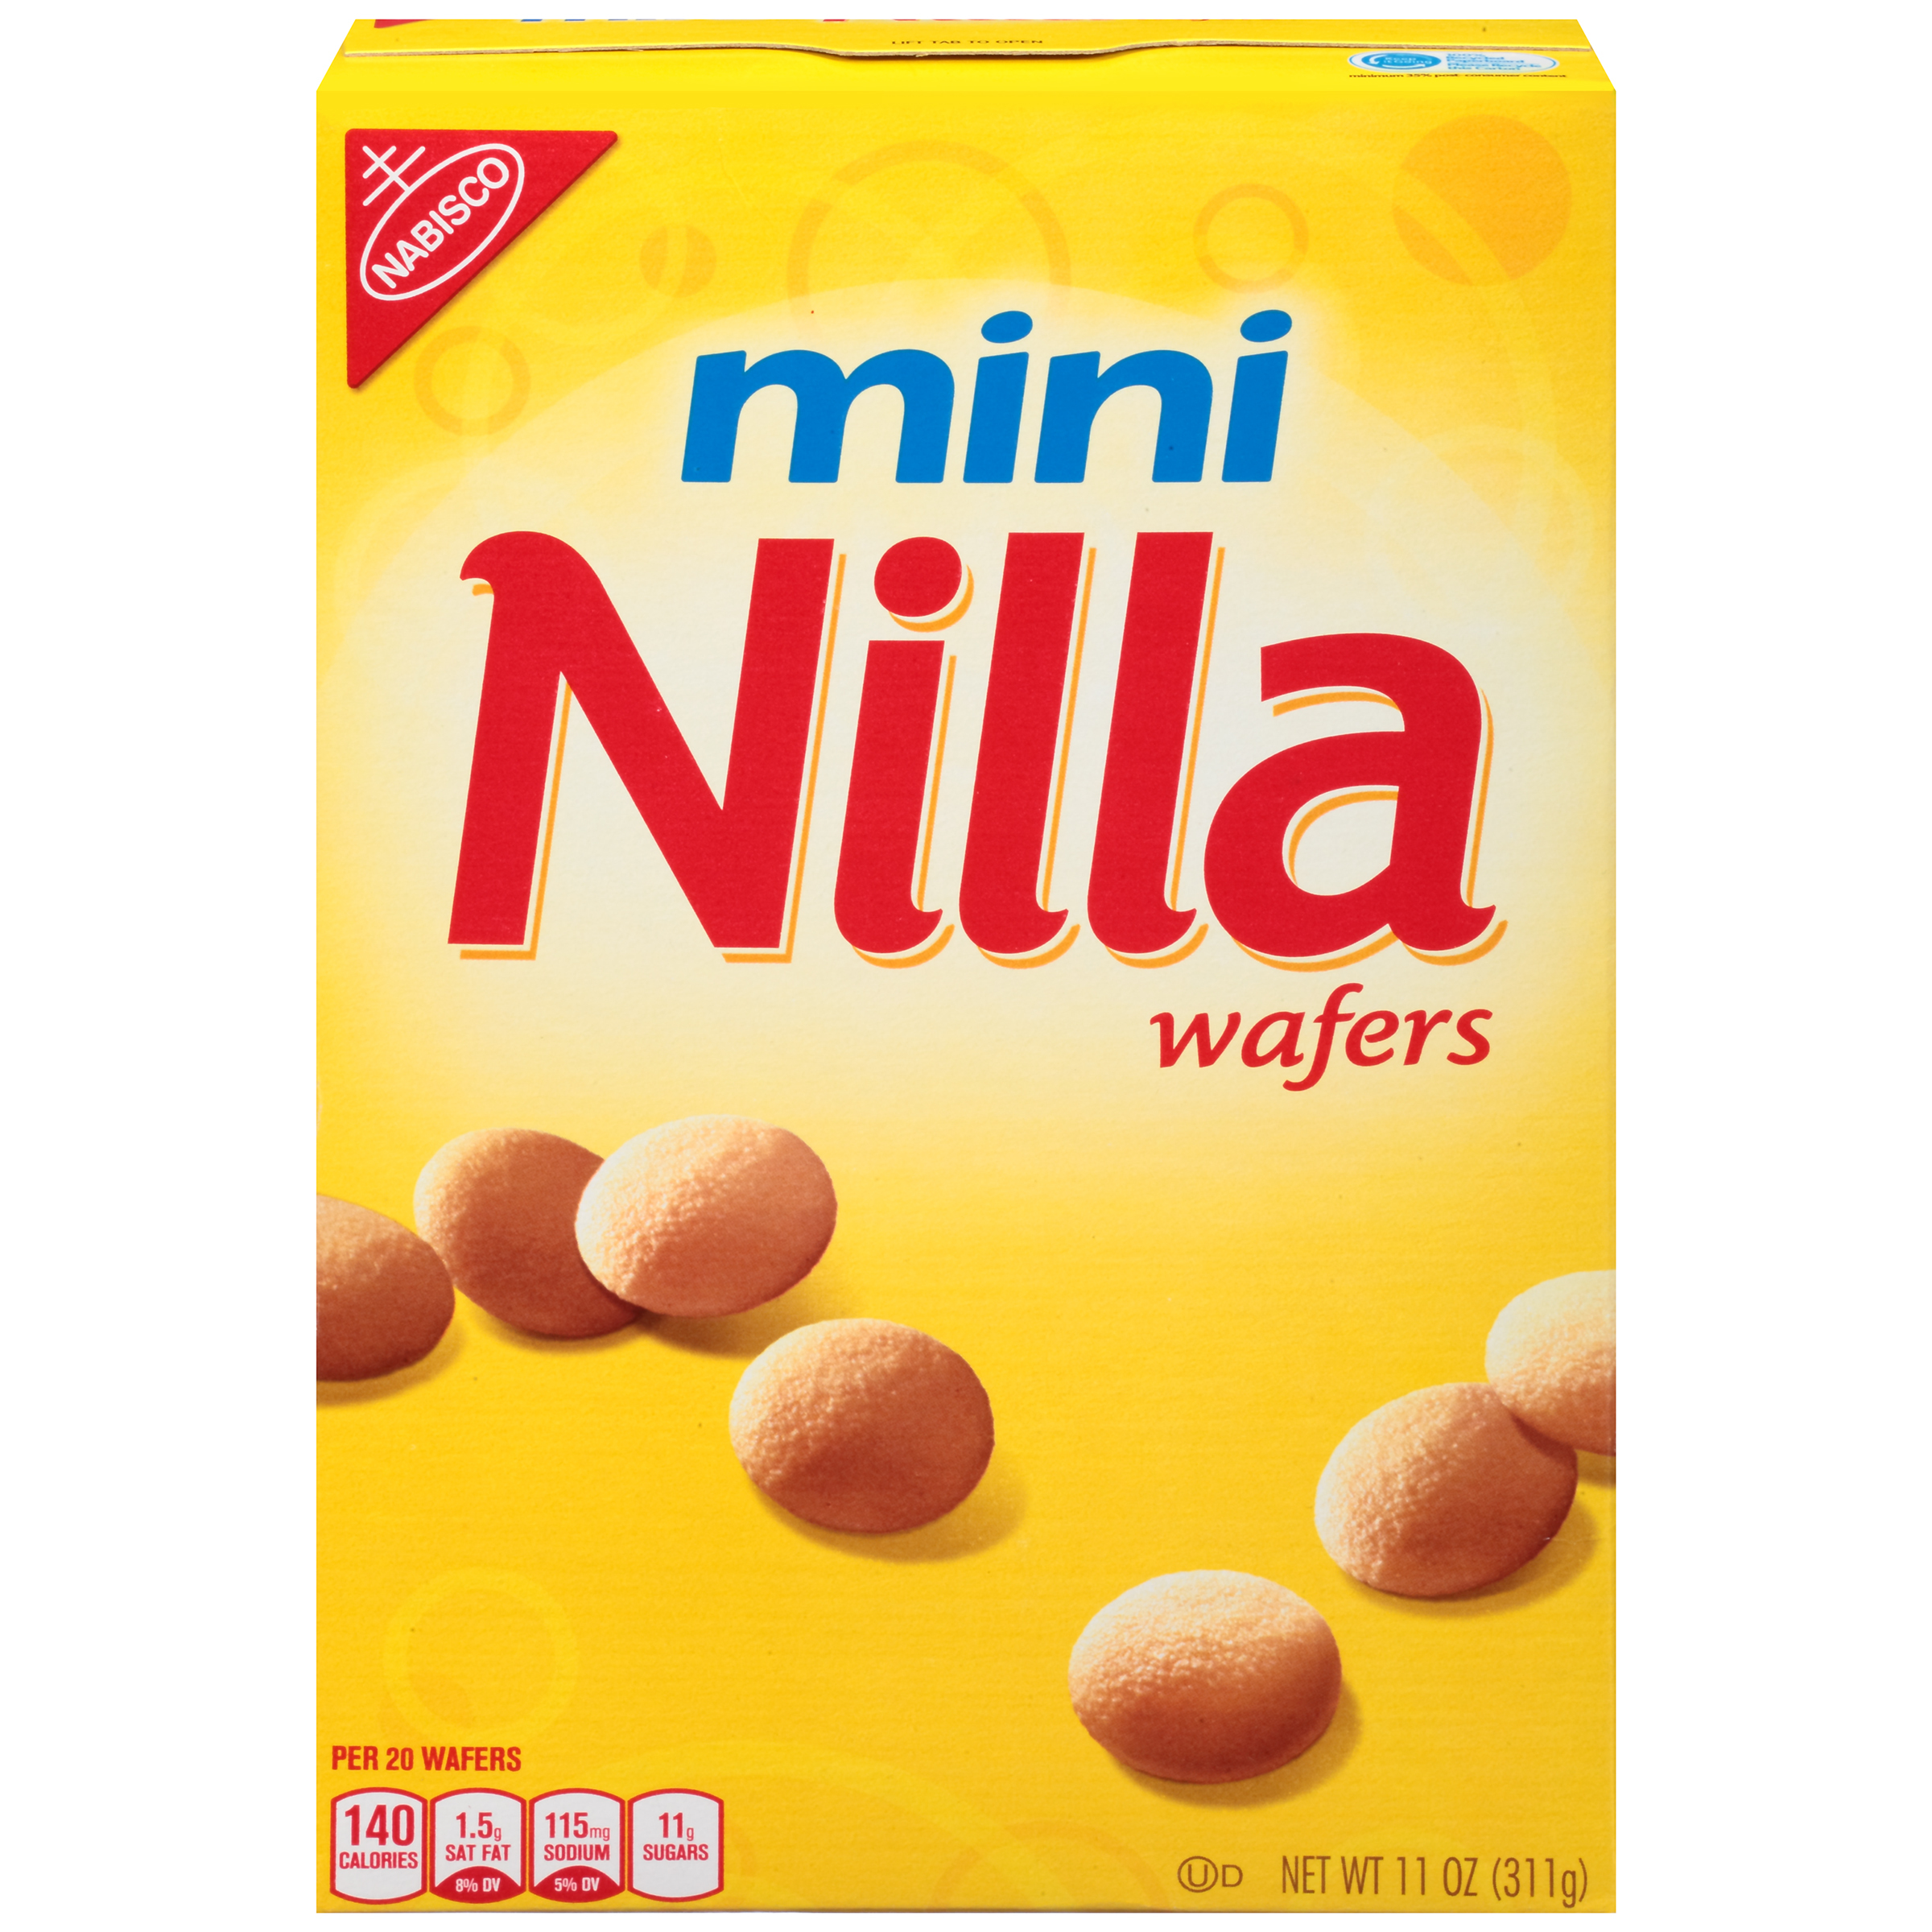 NILLA WAFERS Berry Delight Wafer Cookies, 11 oz Box